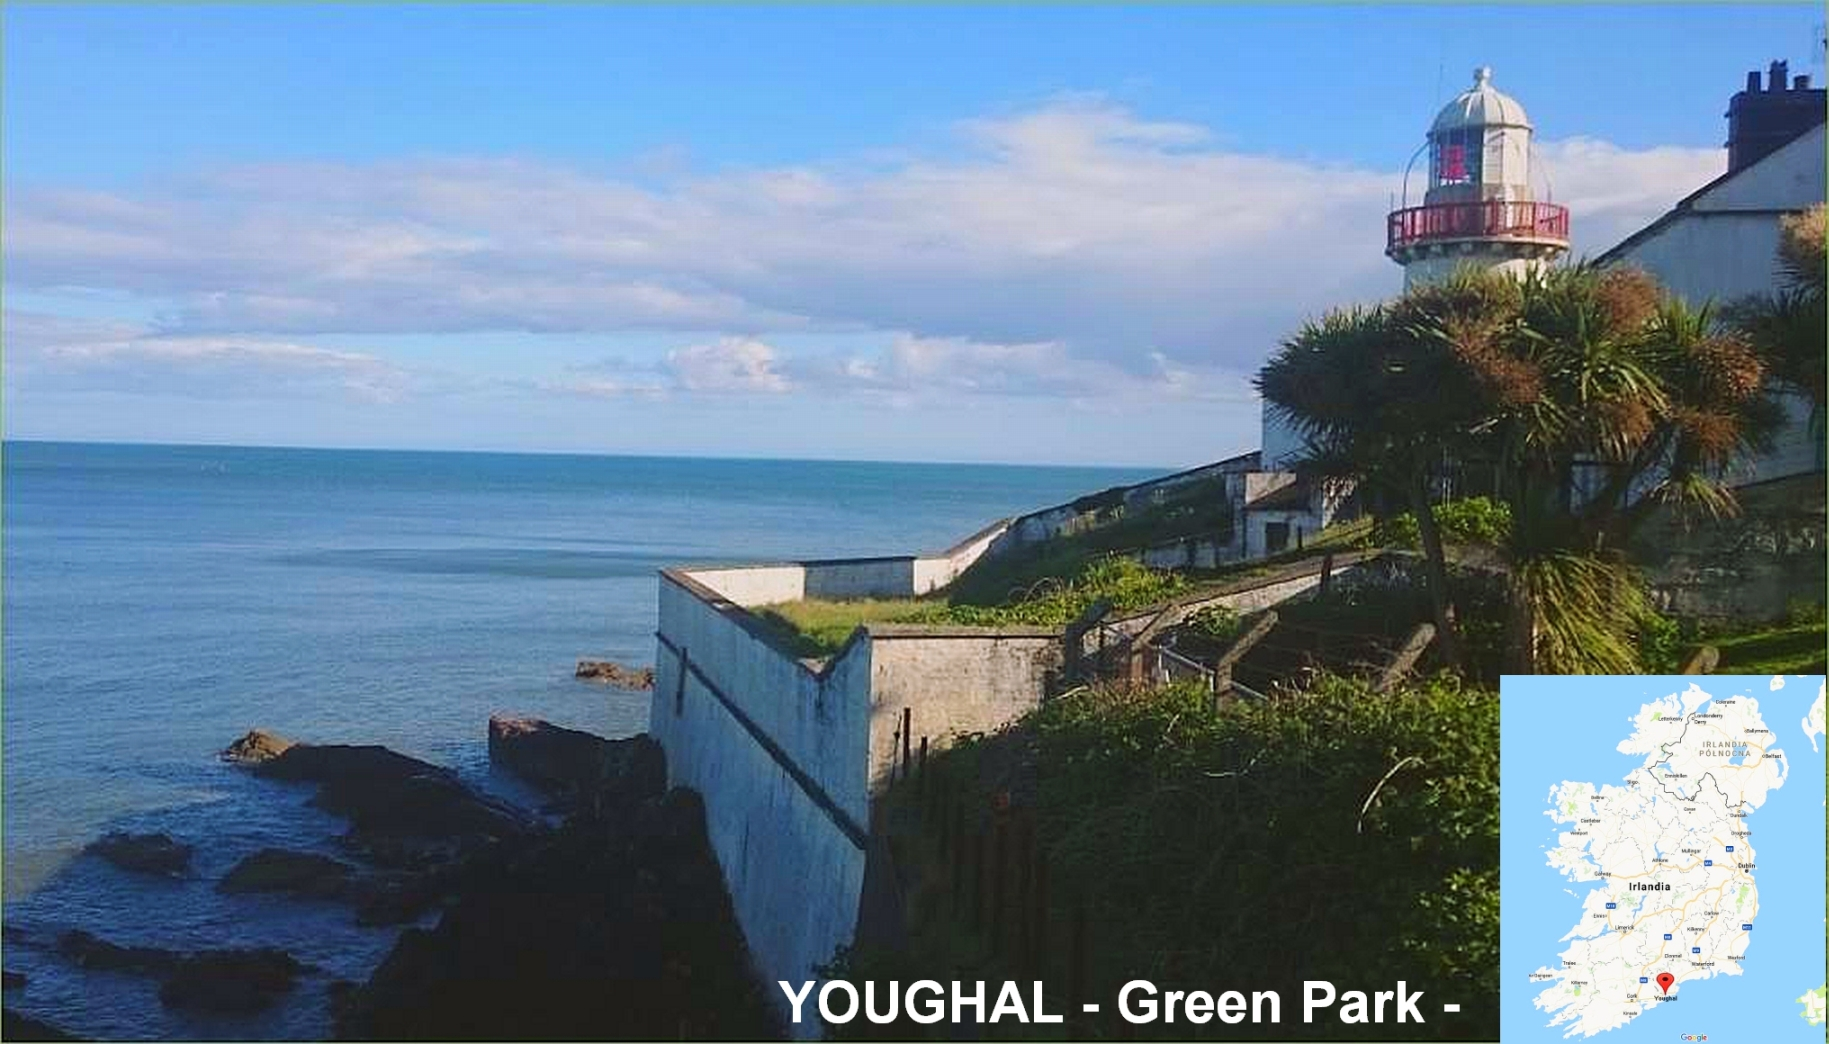 Youghal Green Park